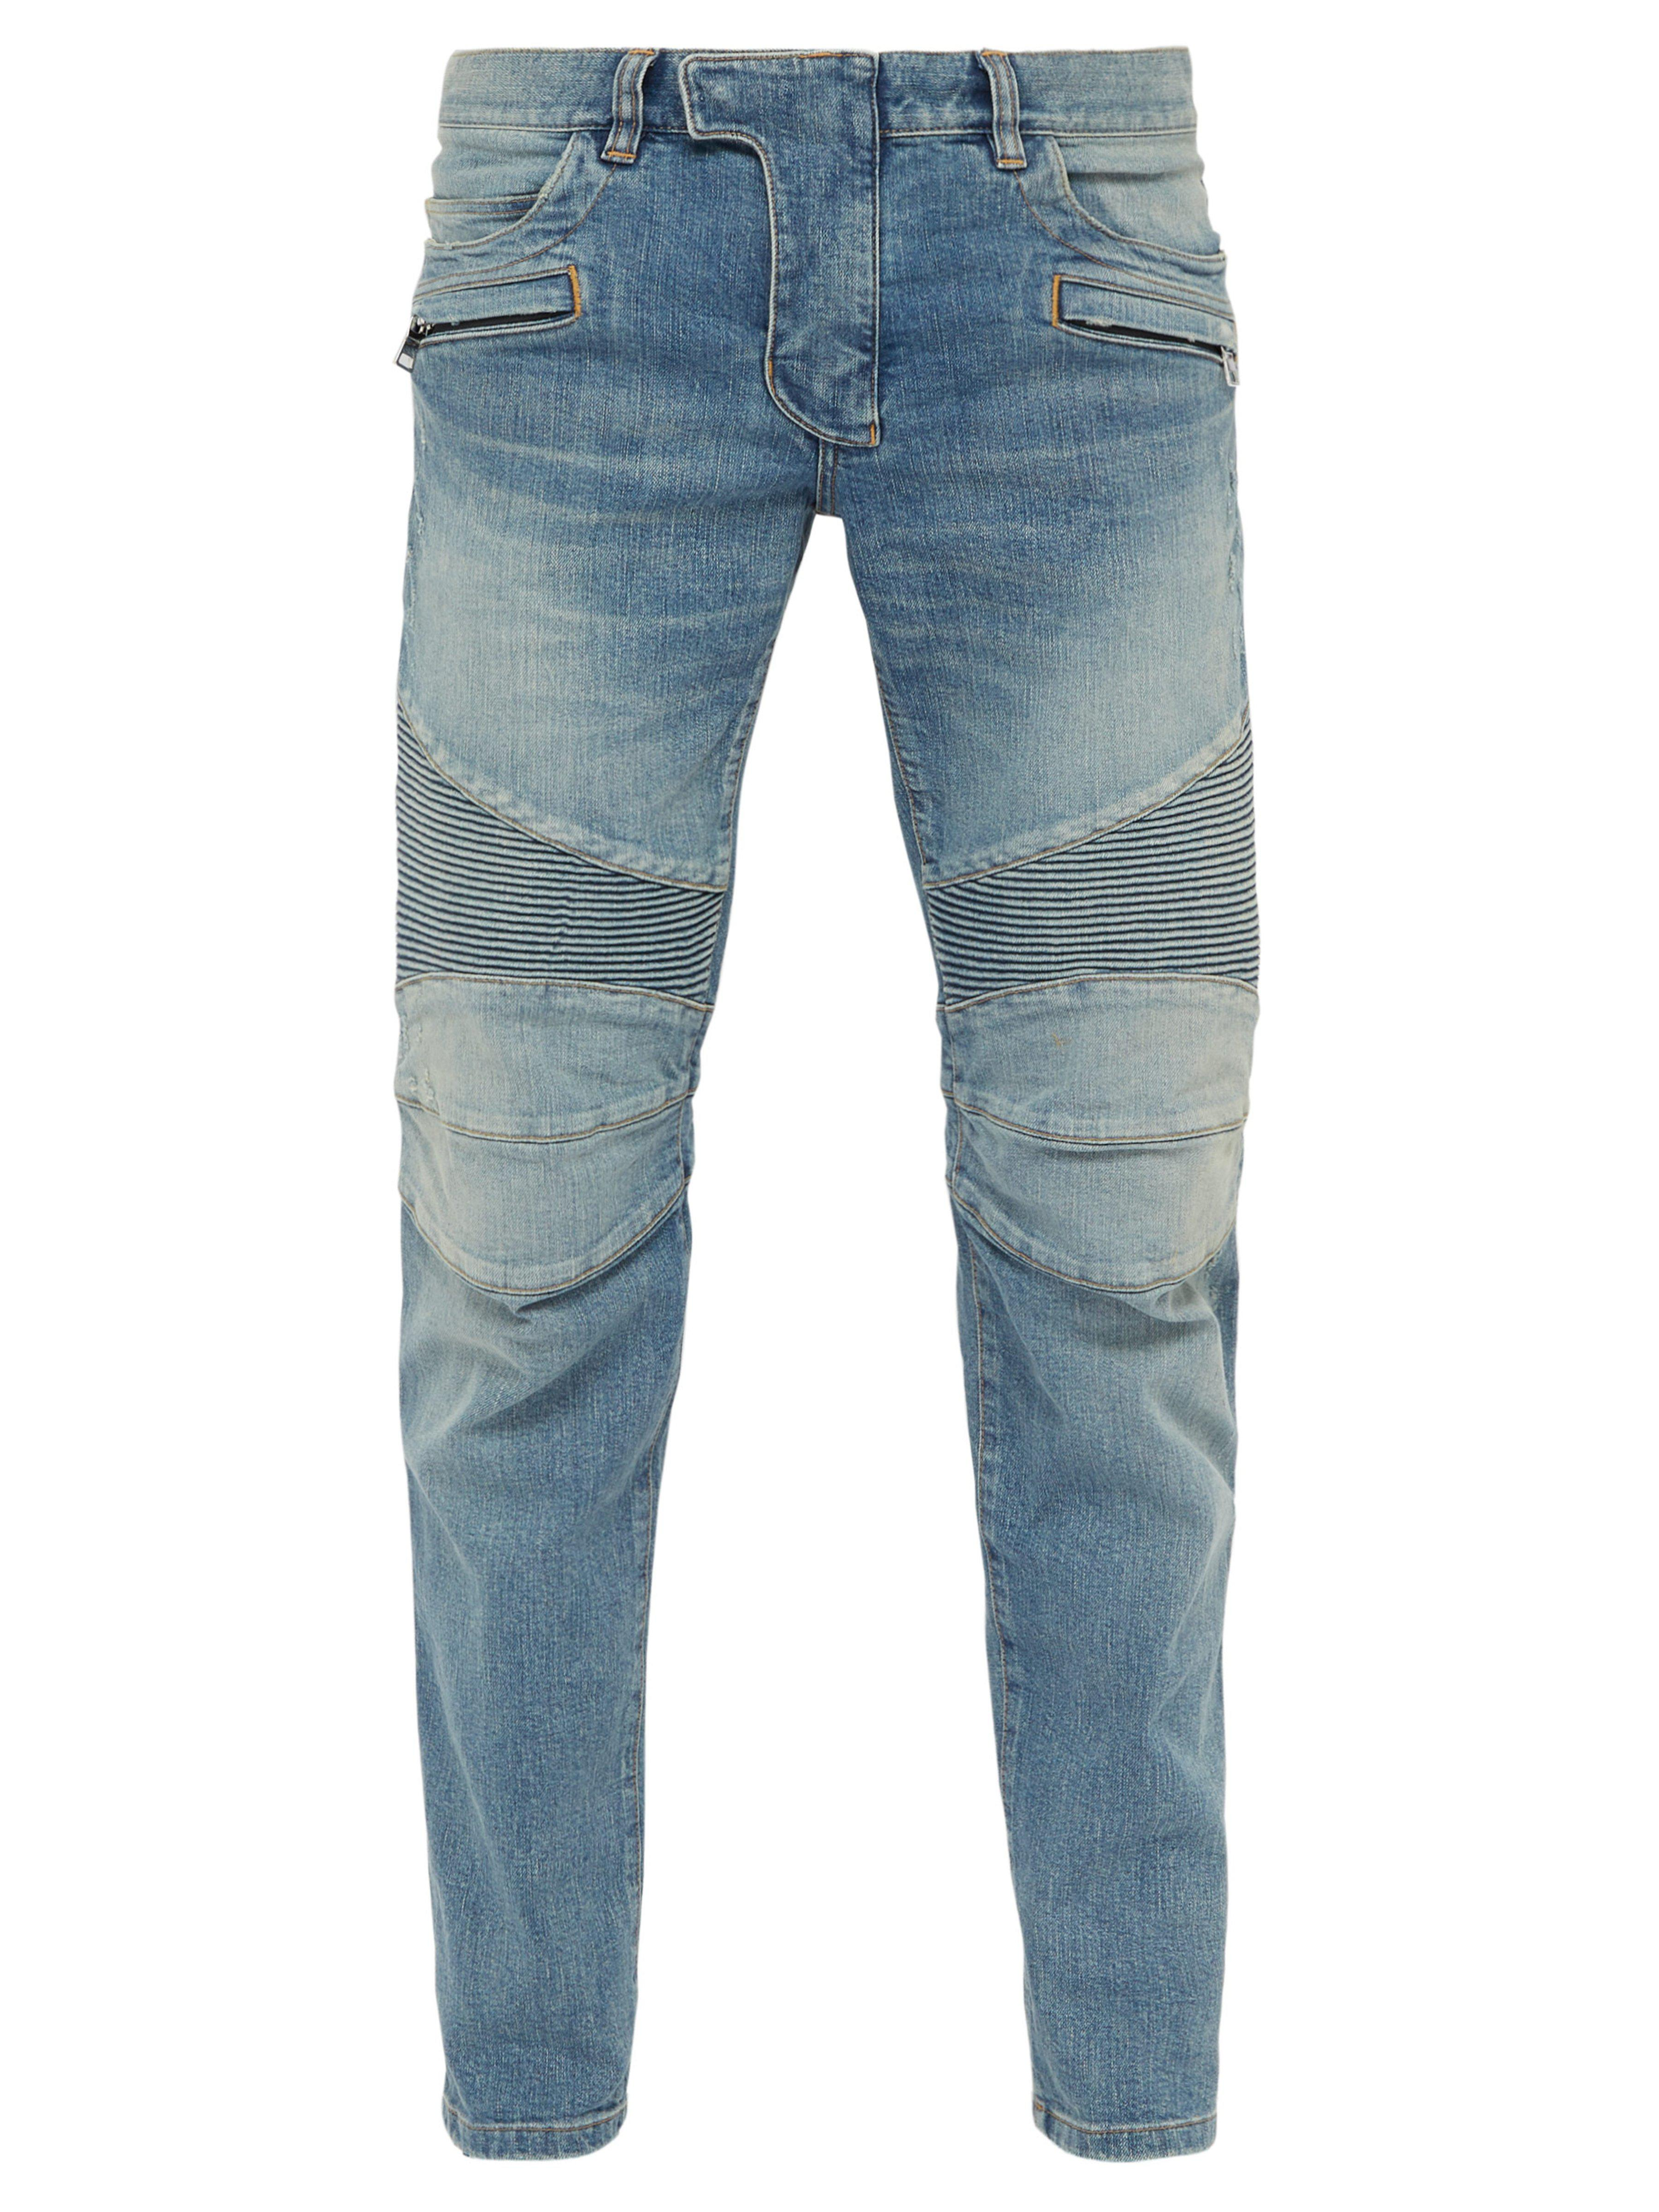 324a825a Balmain Tapered Ribbed Inset Biker Jeans in Blue for Men - Lyst